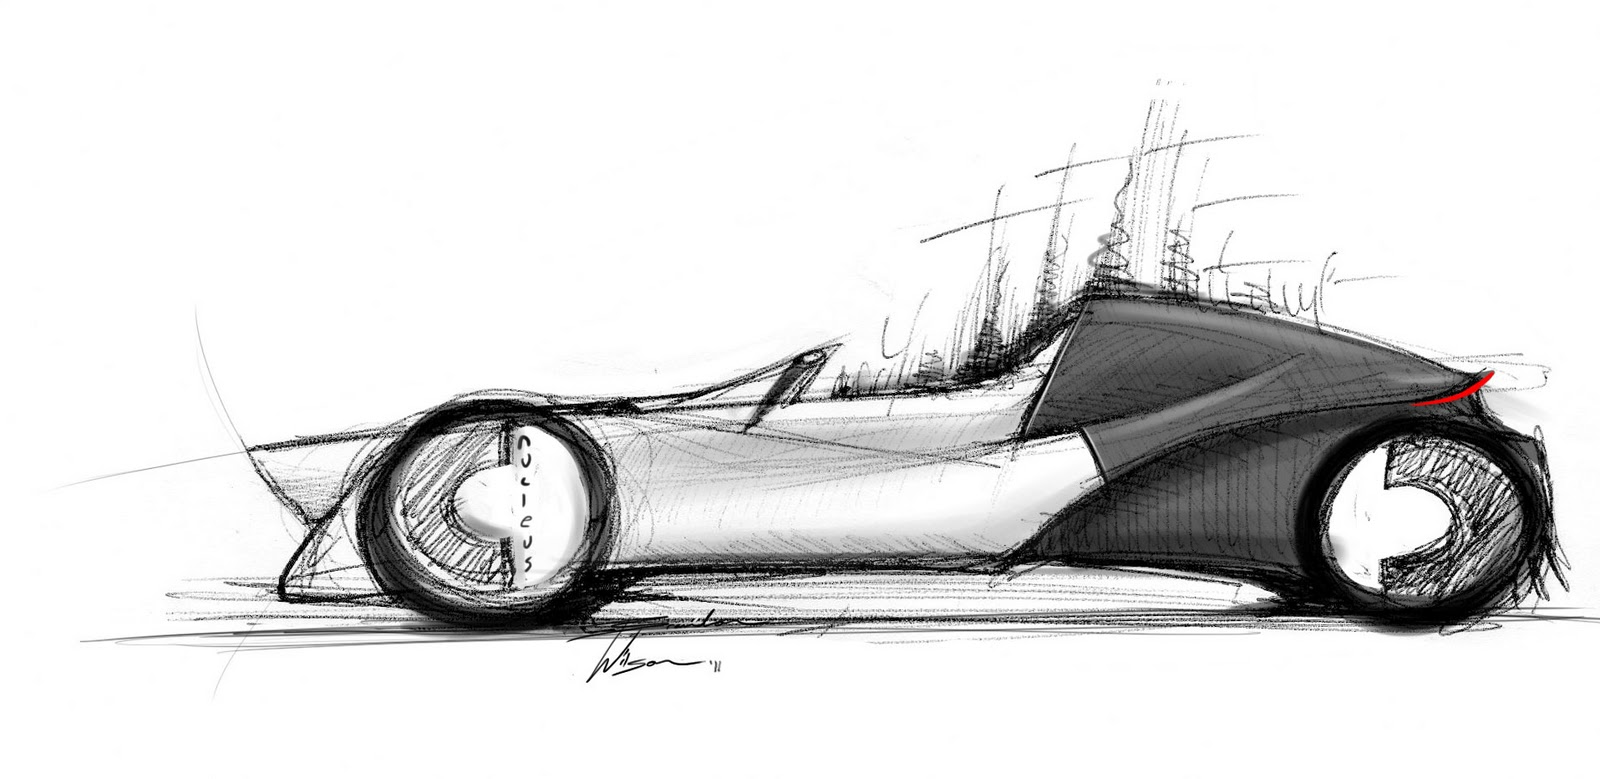 Wilson Design Concept Car Sketch 2 Seat Roadster